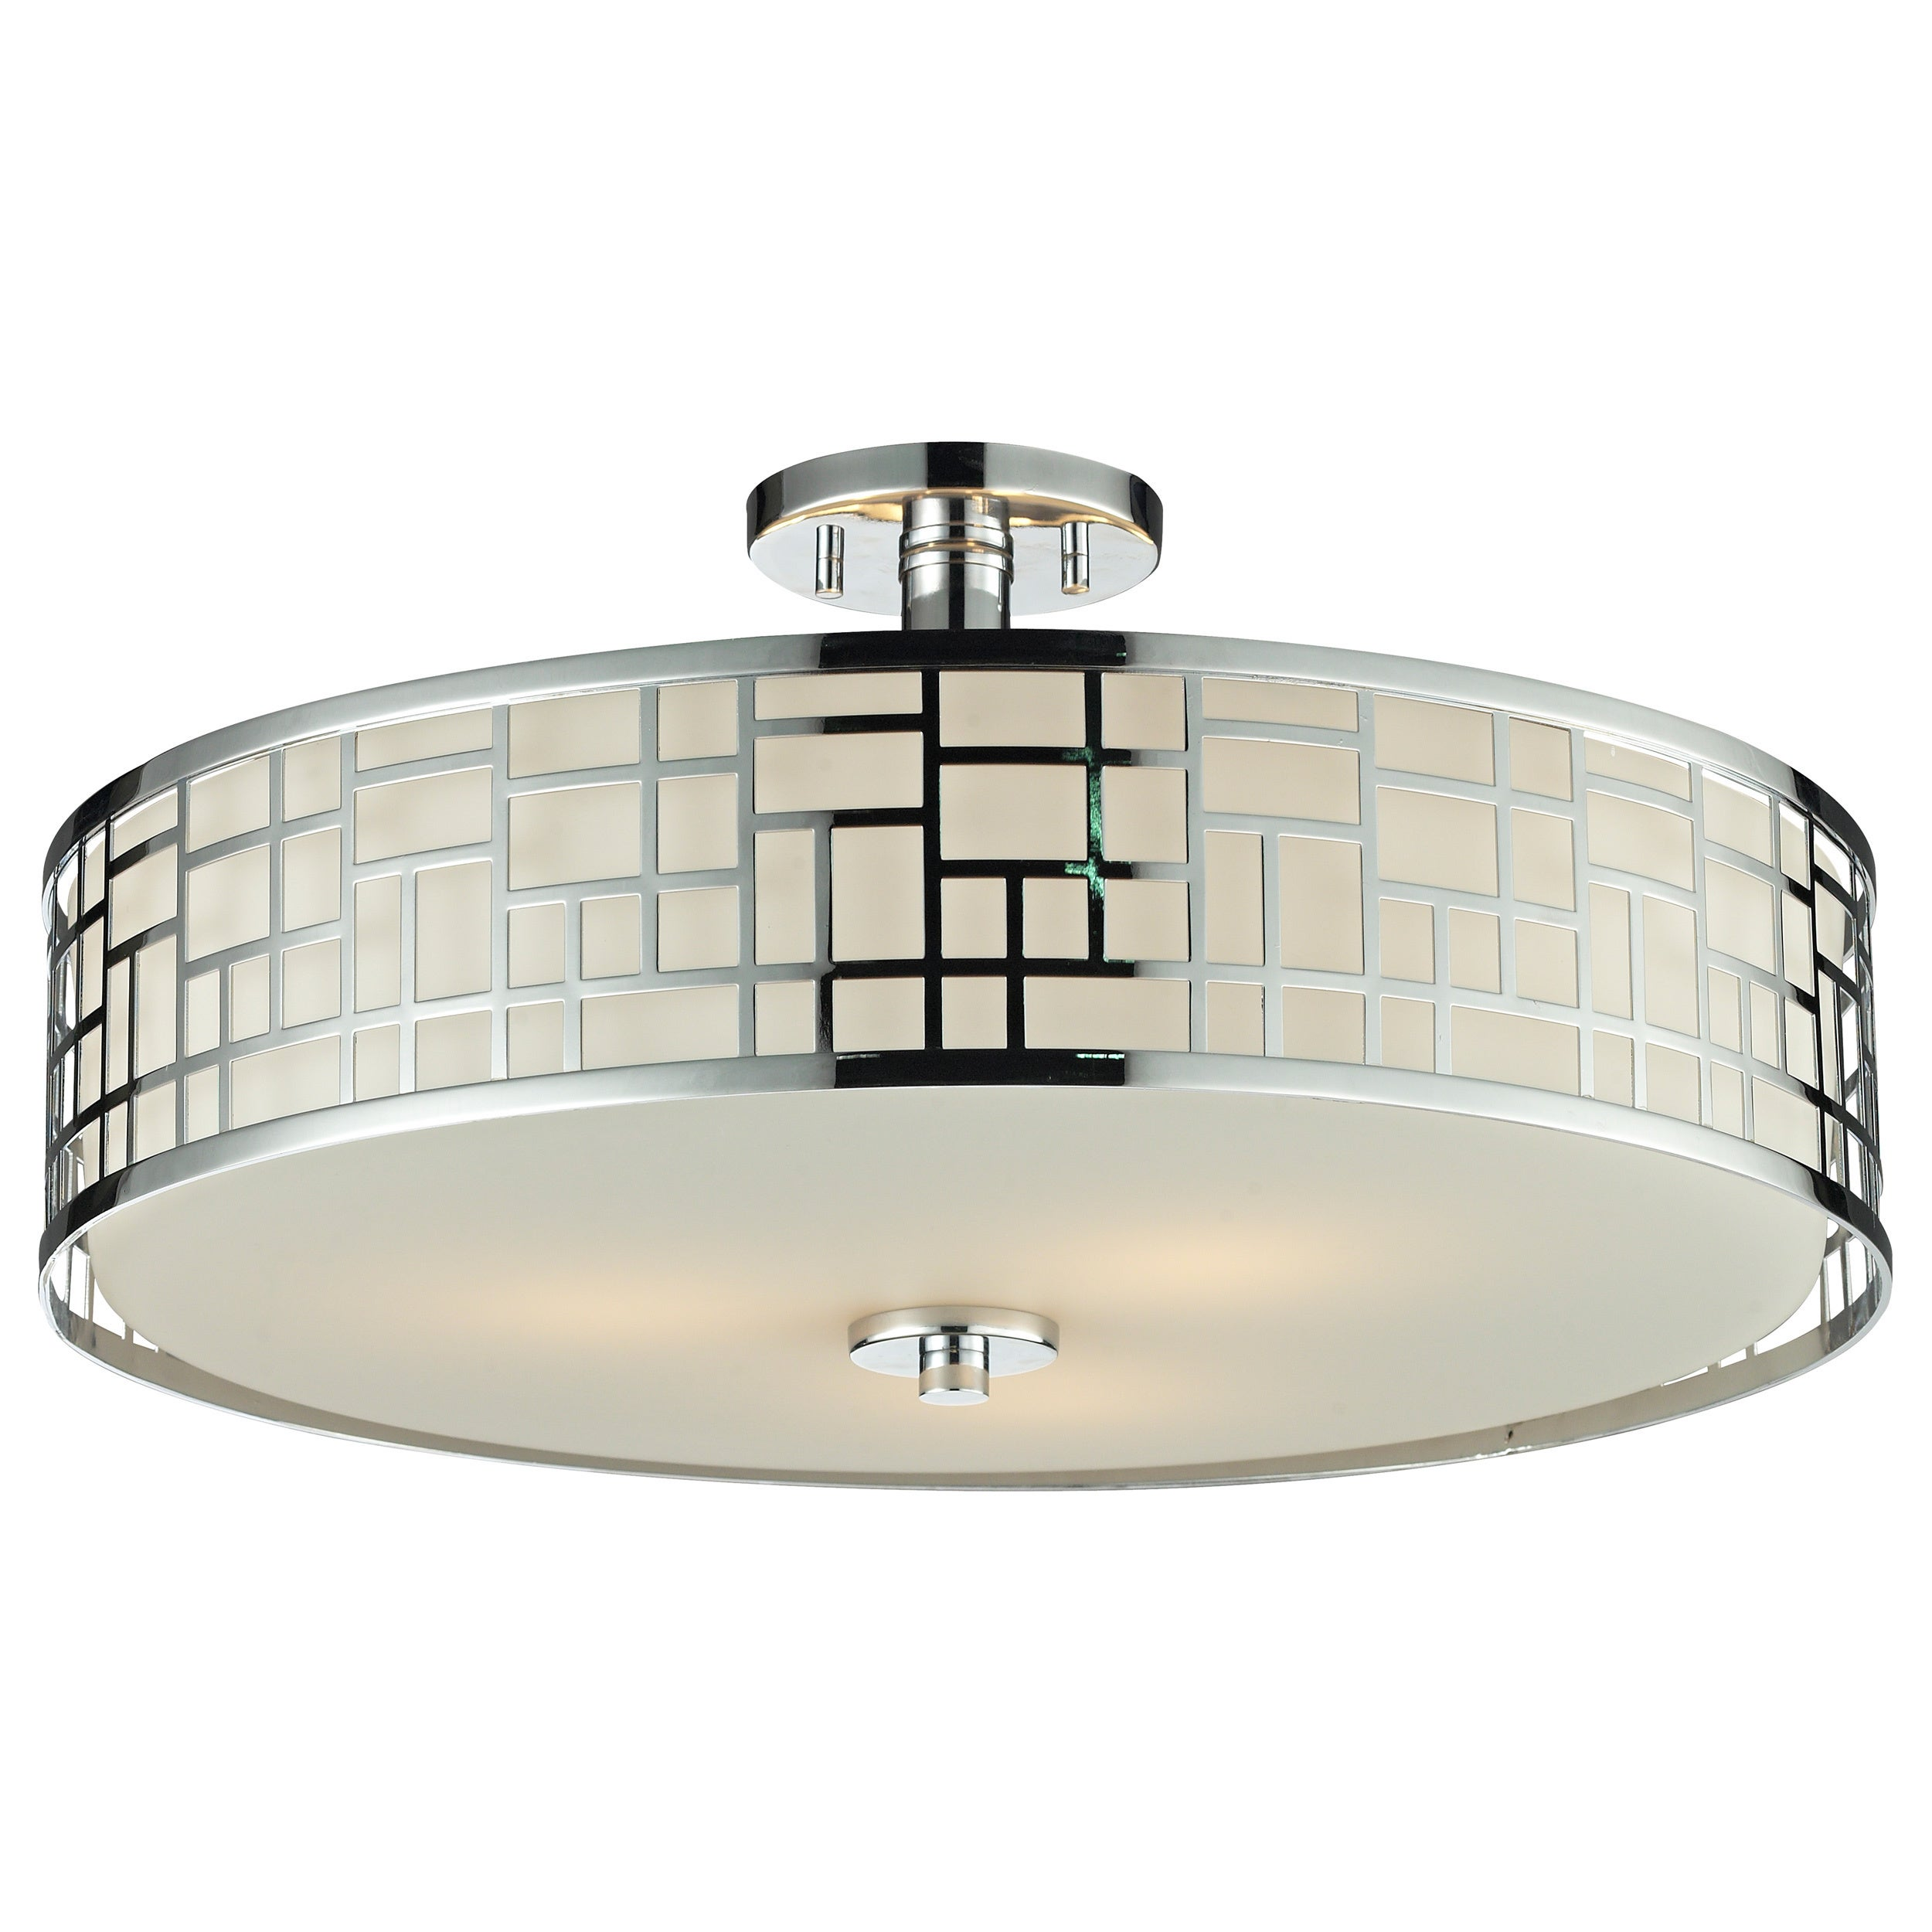 Light 20 5 Inch Semi Flush Mount